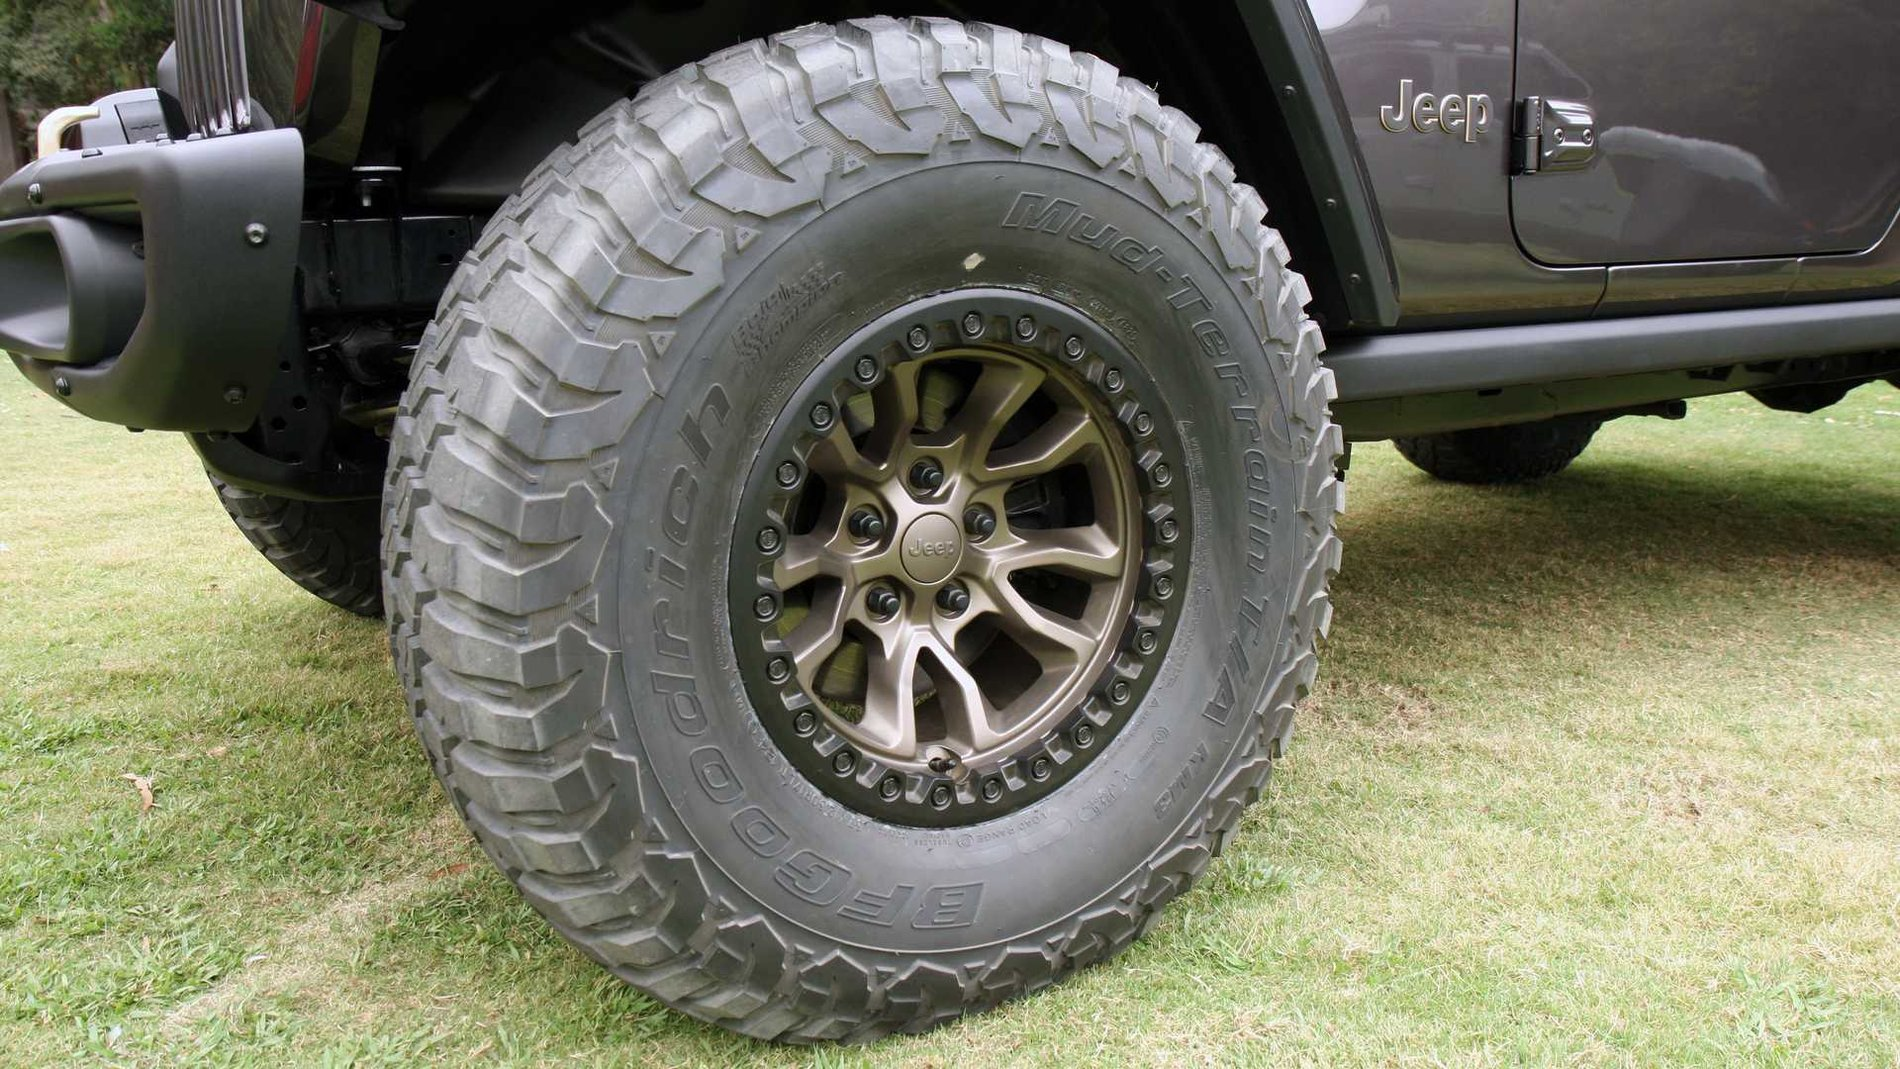 jeep-wrangler-392-concept-exterior-wheel-and-tire.jpg